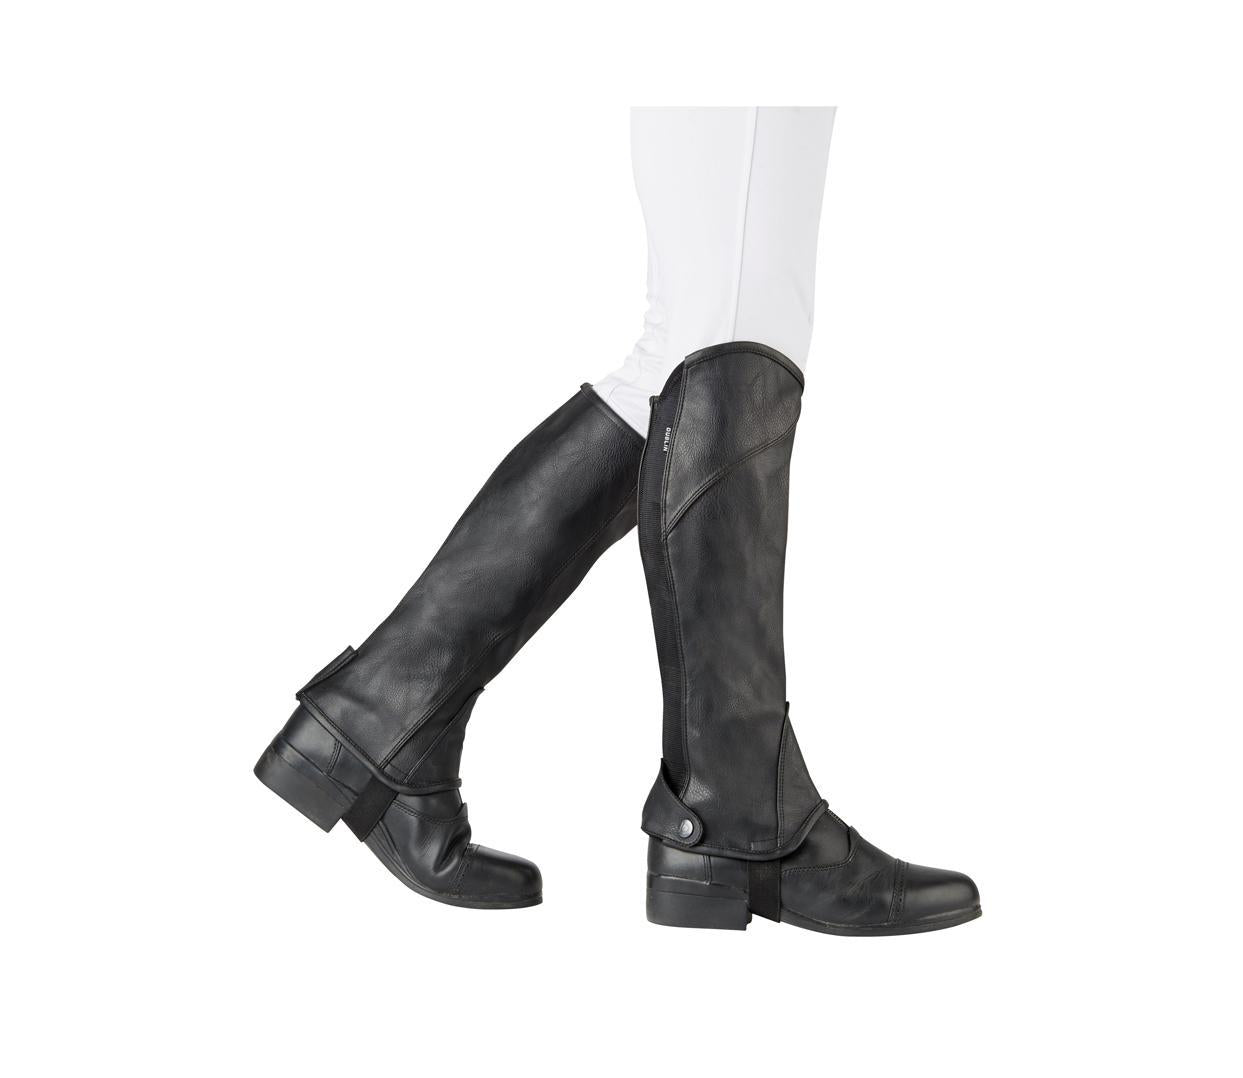 Dublin Stretch Fit Half Chaps Childs